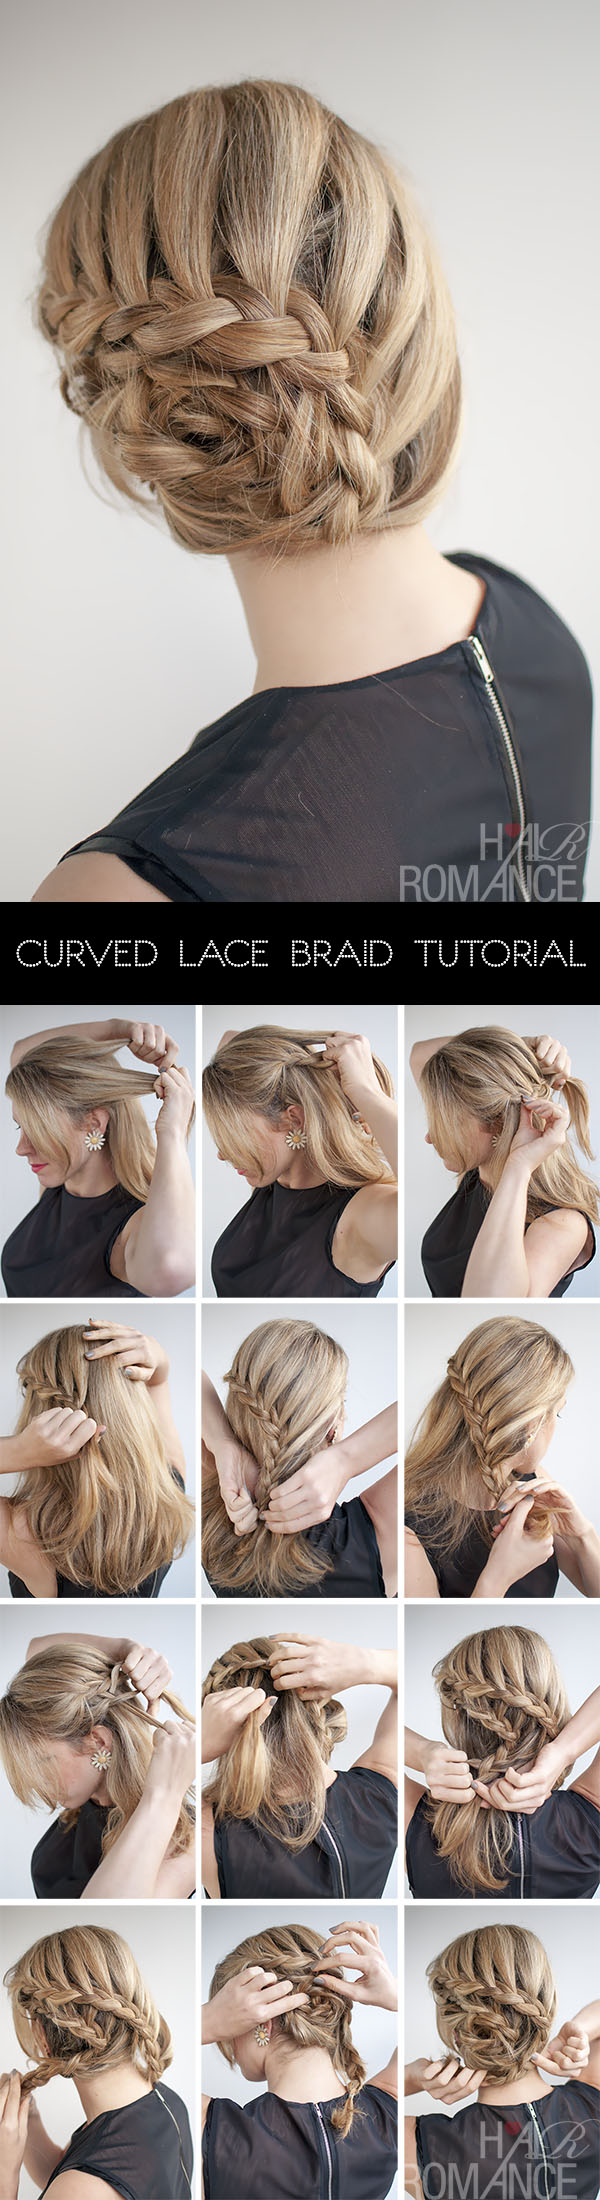 Curved lace braid hairstyle tutorial inspired by Nicole Kidman at